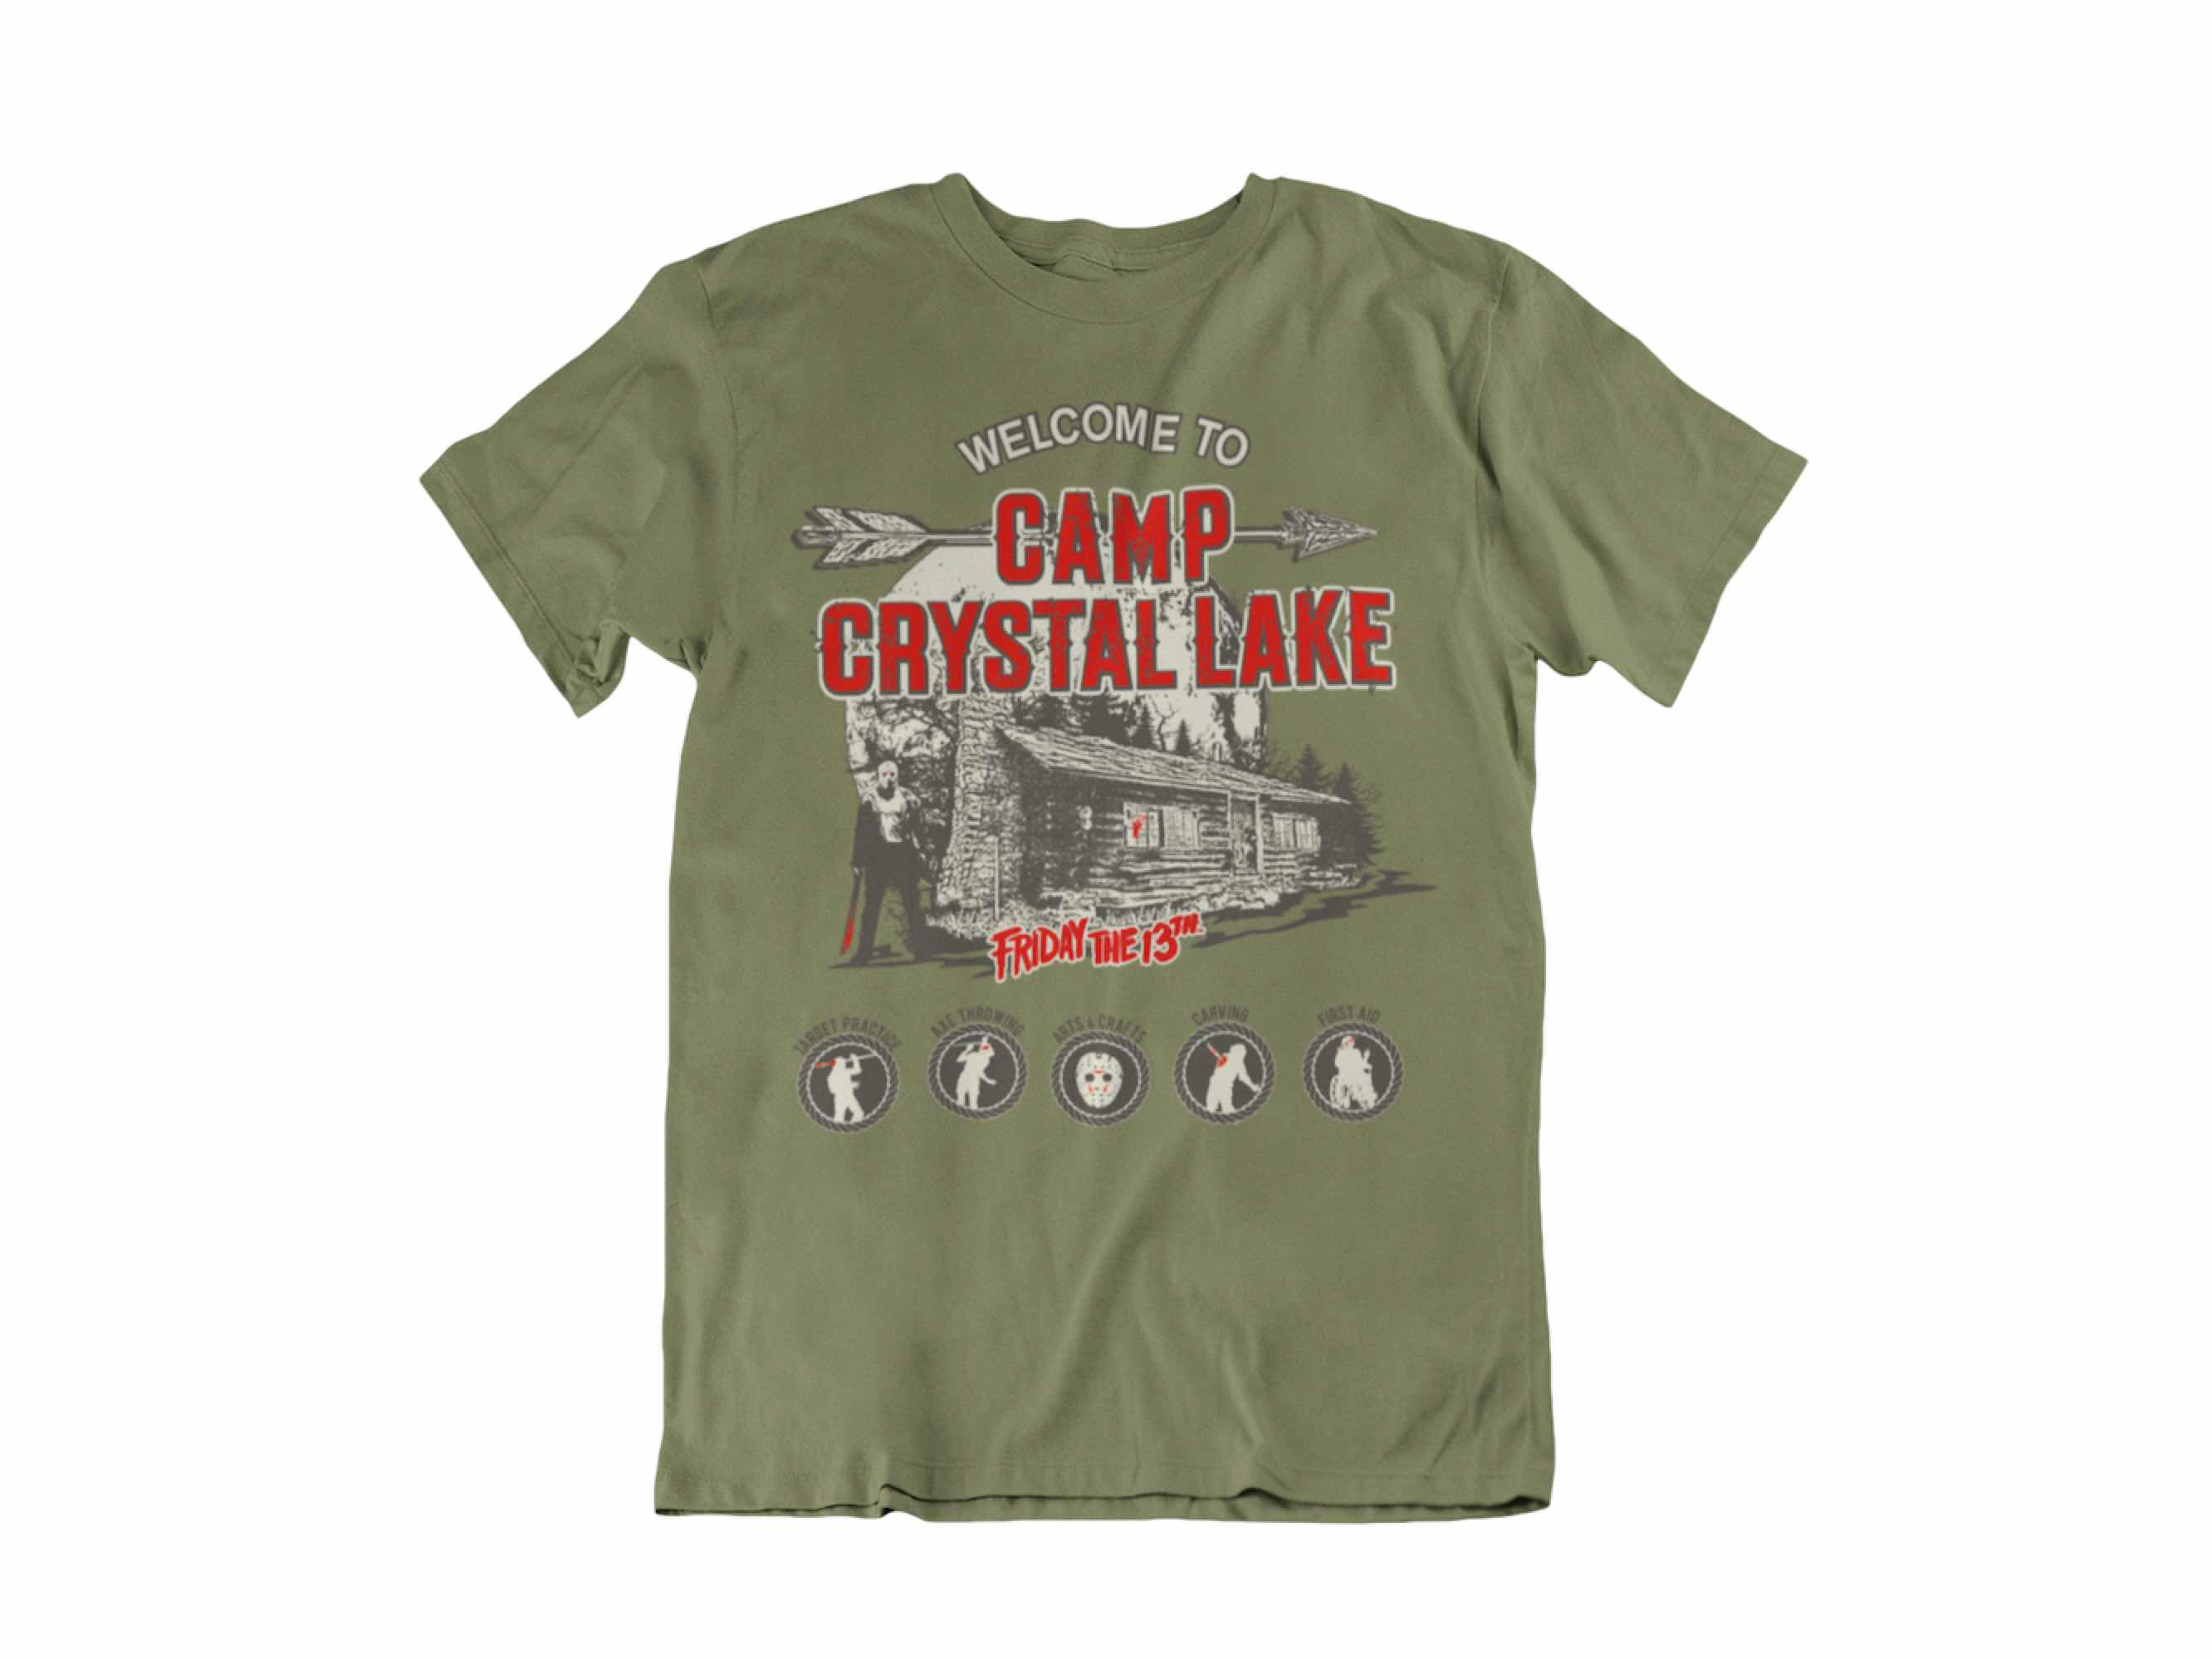 CAMISETA WELCOME TO CAMP CRYSTAL LAKE UNISEX TALLA 2XL VIERNES 13